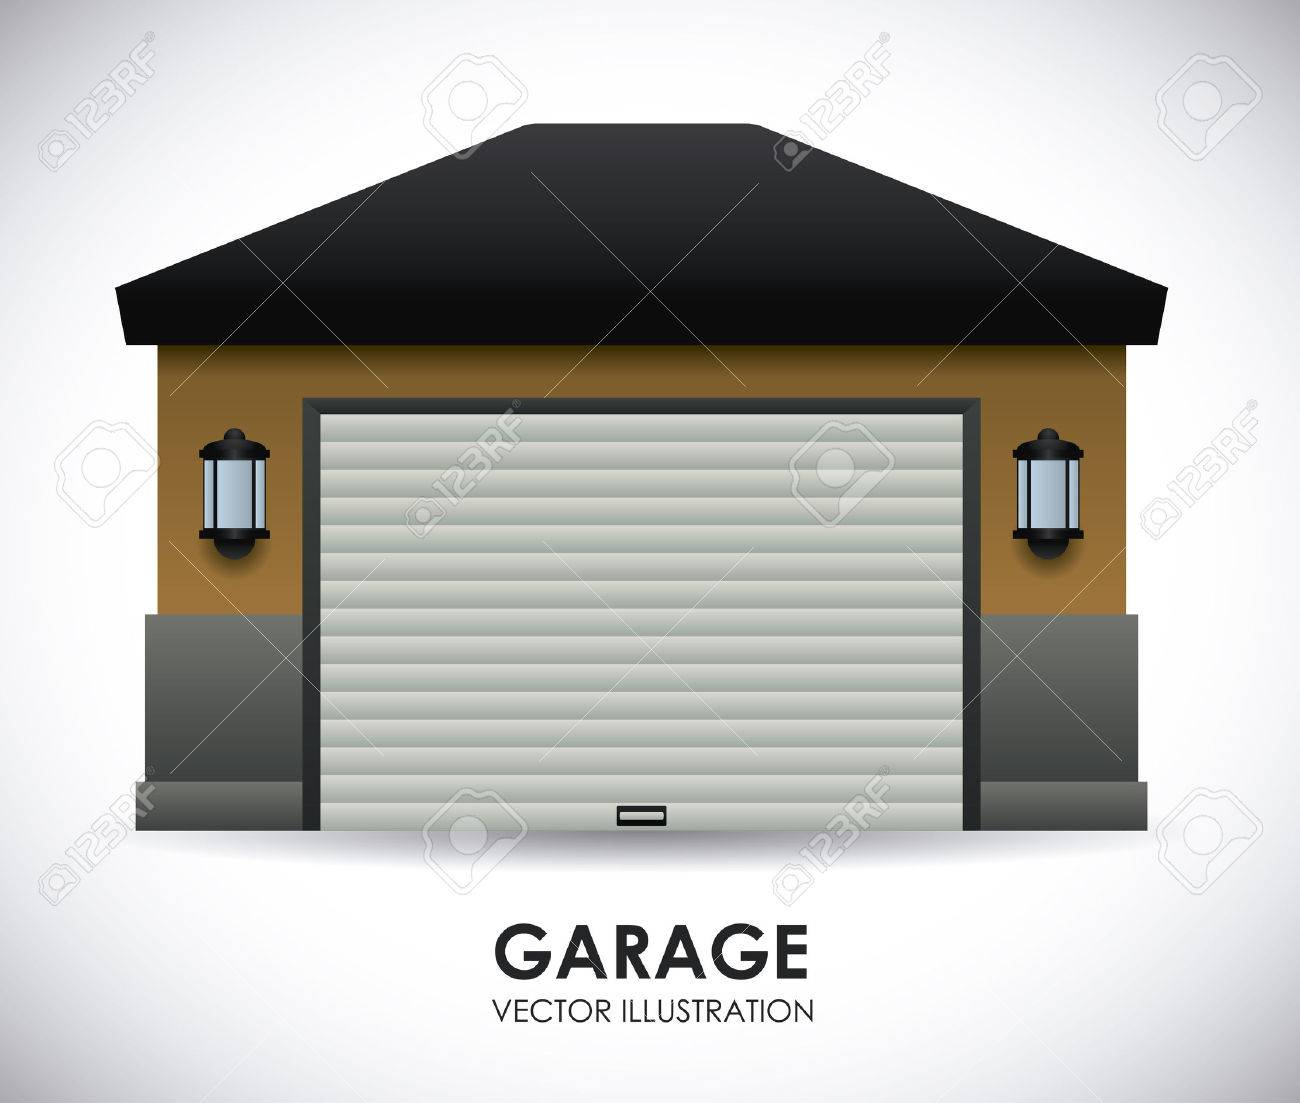 3 873 garage door cliparts stock vector and royalty free garage garage door garage design vector illustration illustration